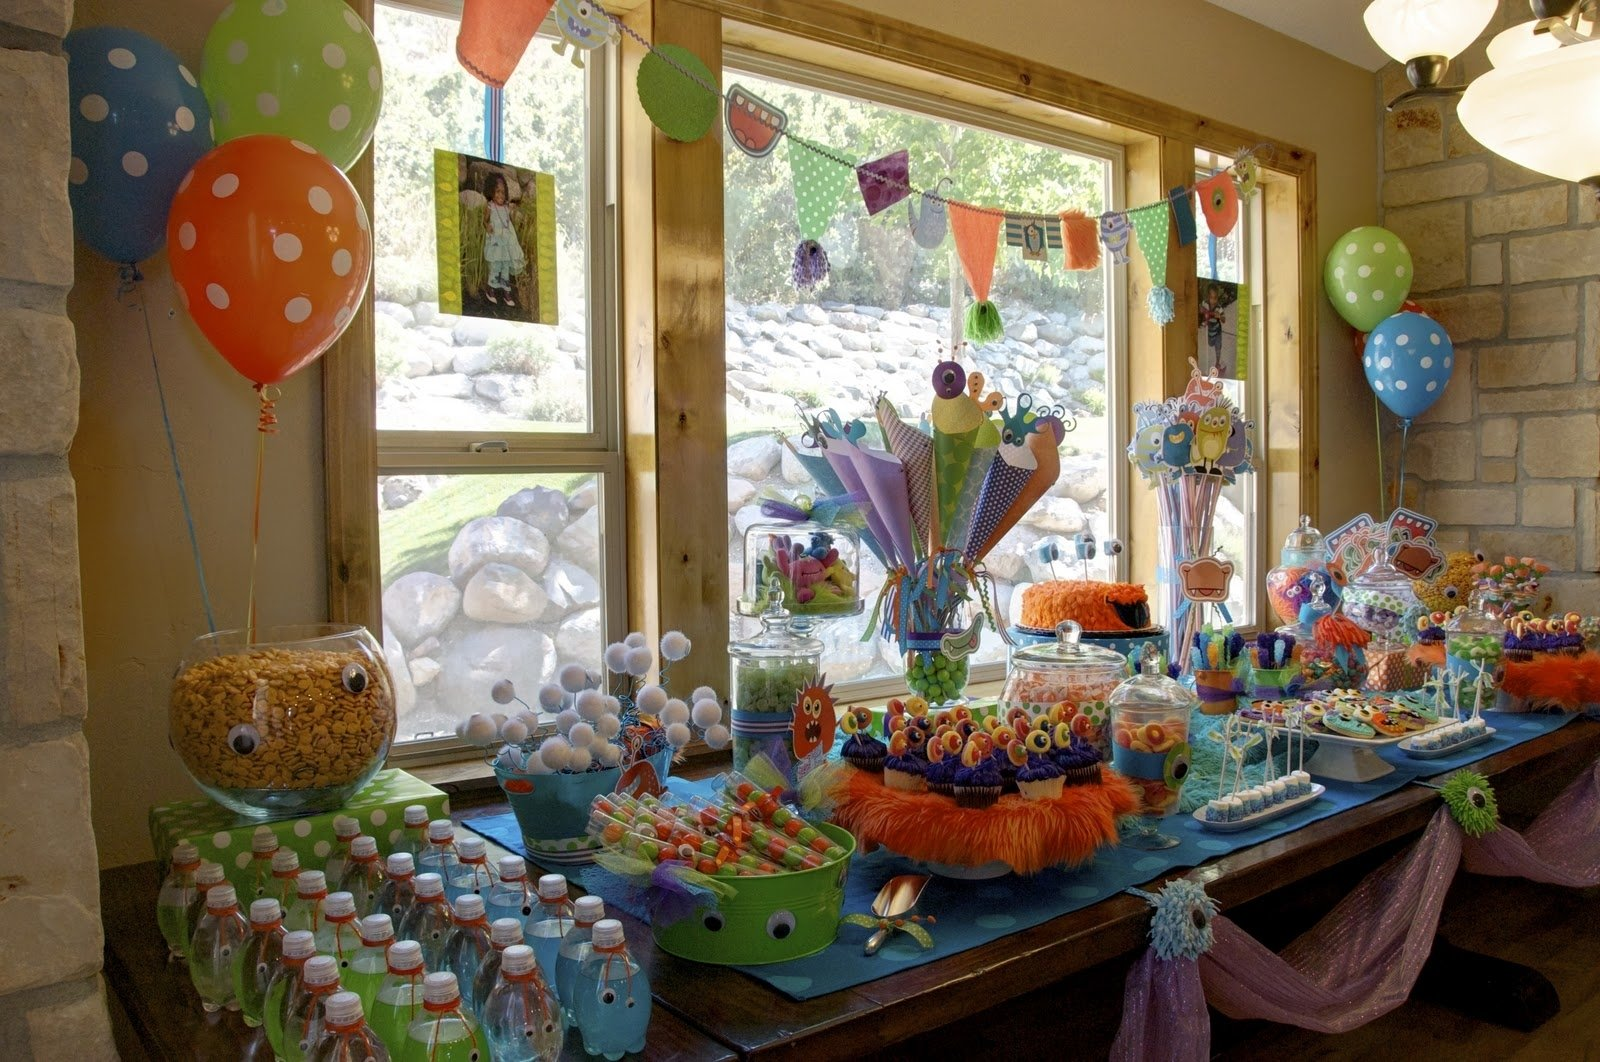 10 Stylish 14 Year Old Boy Birthday Party Ideas My Friends Is In The Winter